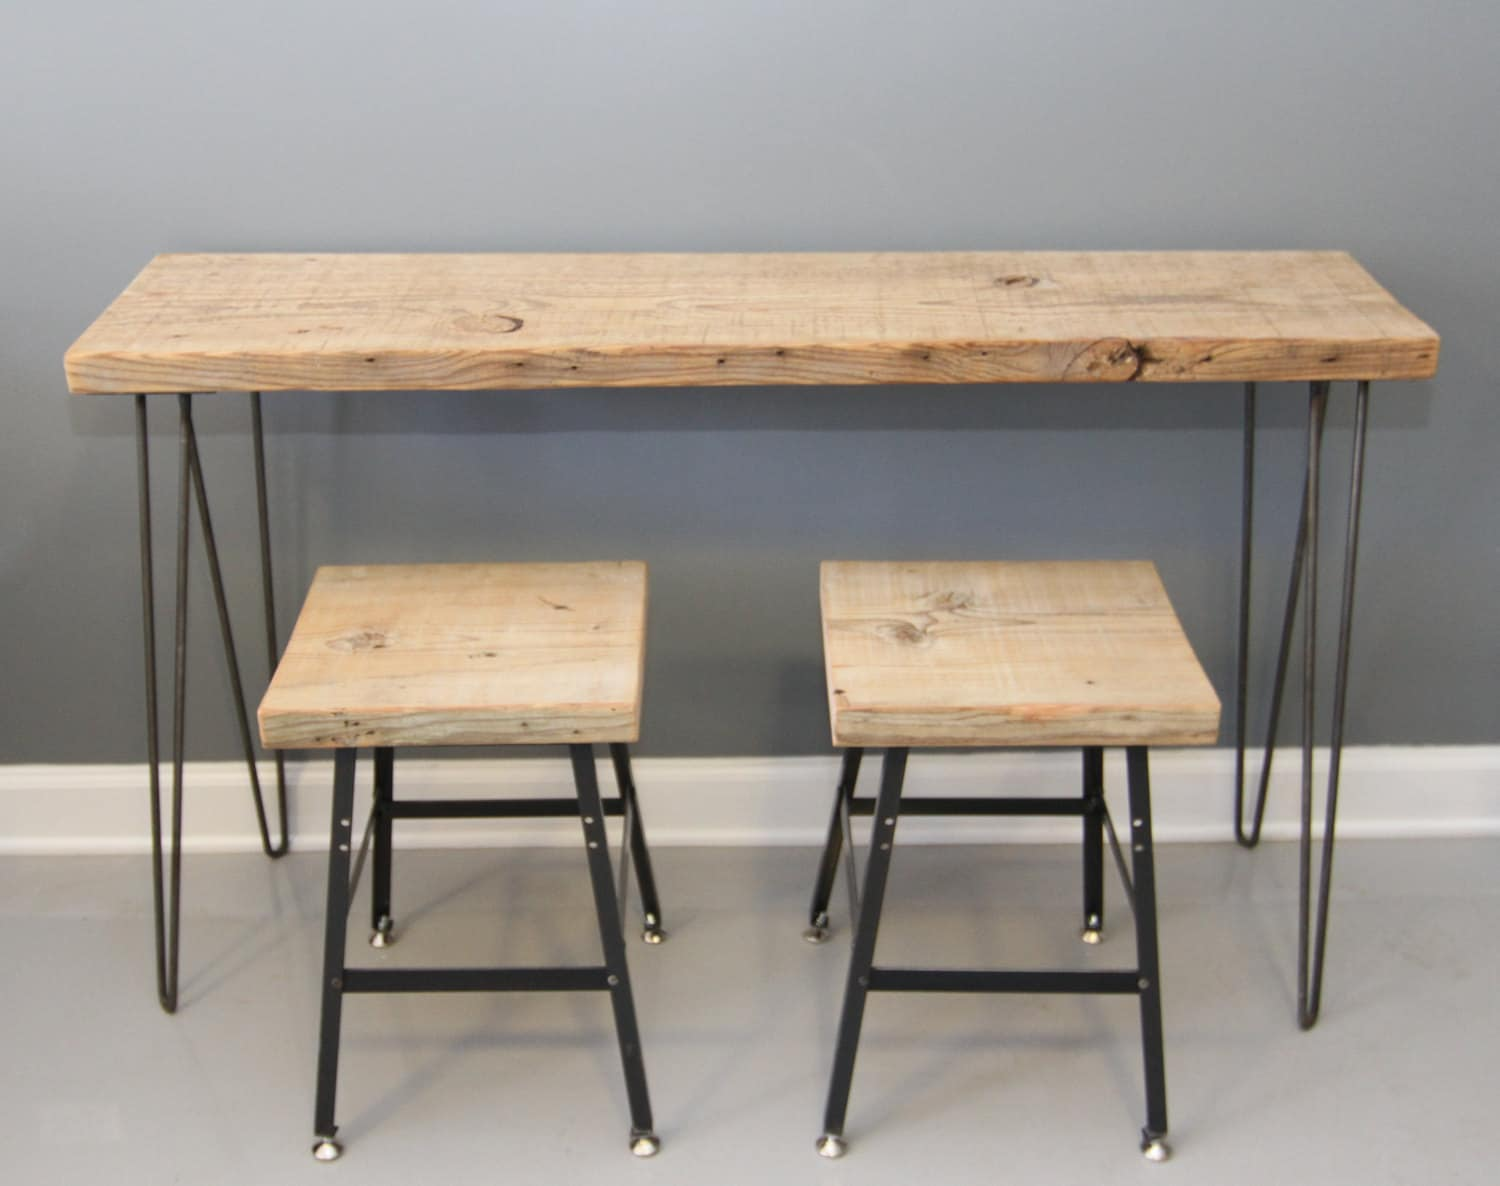 Small urban space desk with 2 bar stools chairs by dendroco - Small urban spaces image ...